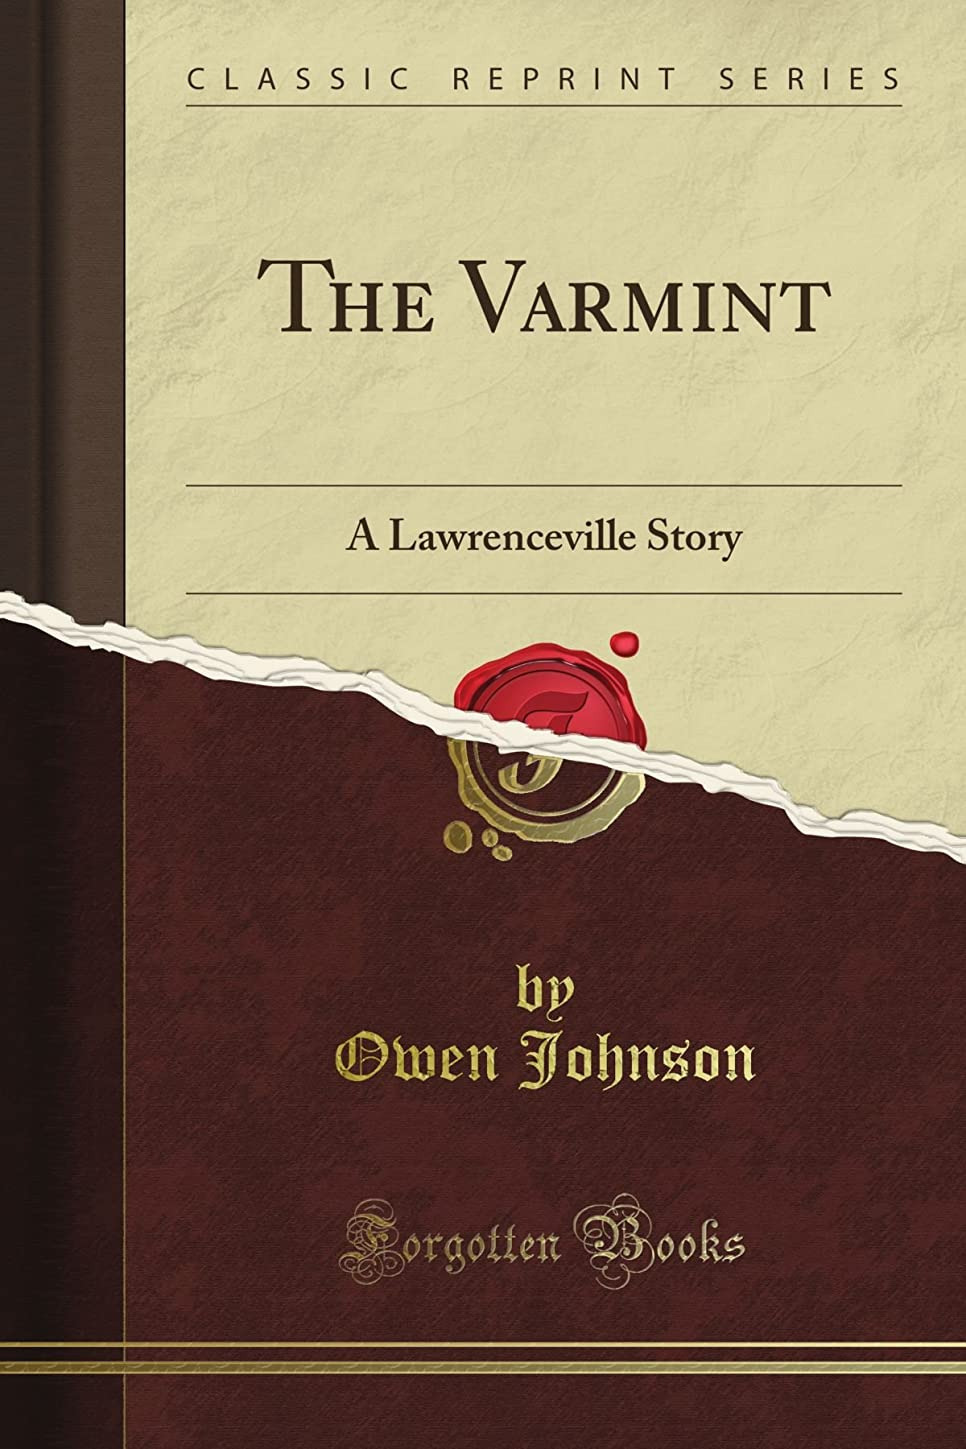 センチメートル妥協インシュレータThe Varmint: A Lawrenceville Story (Classic Reprint)